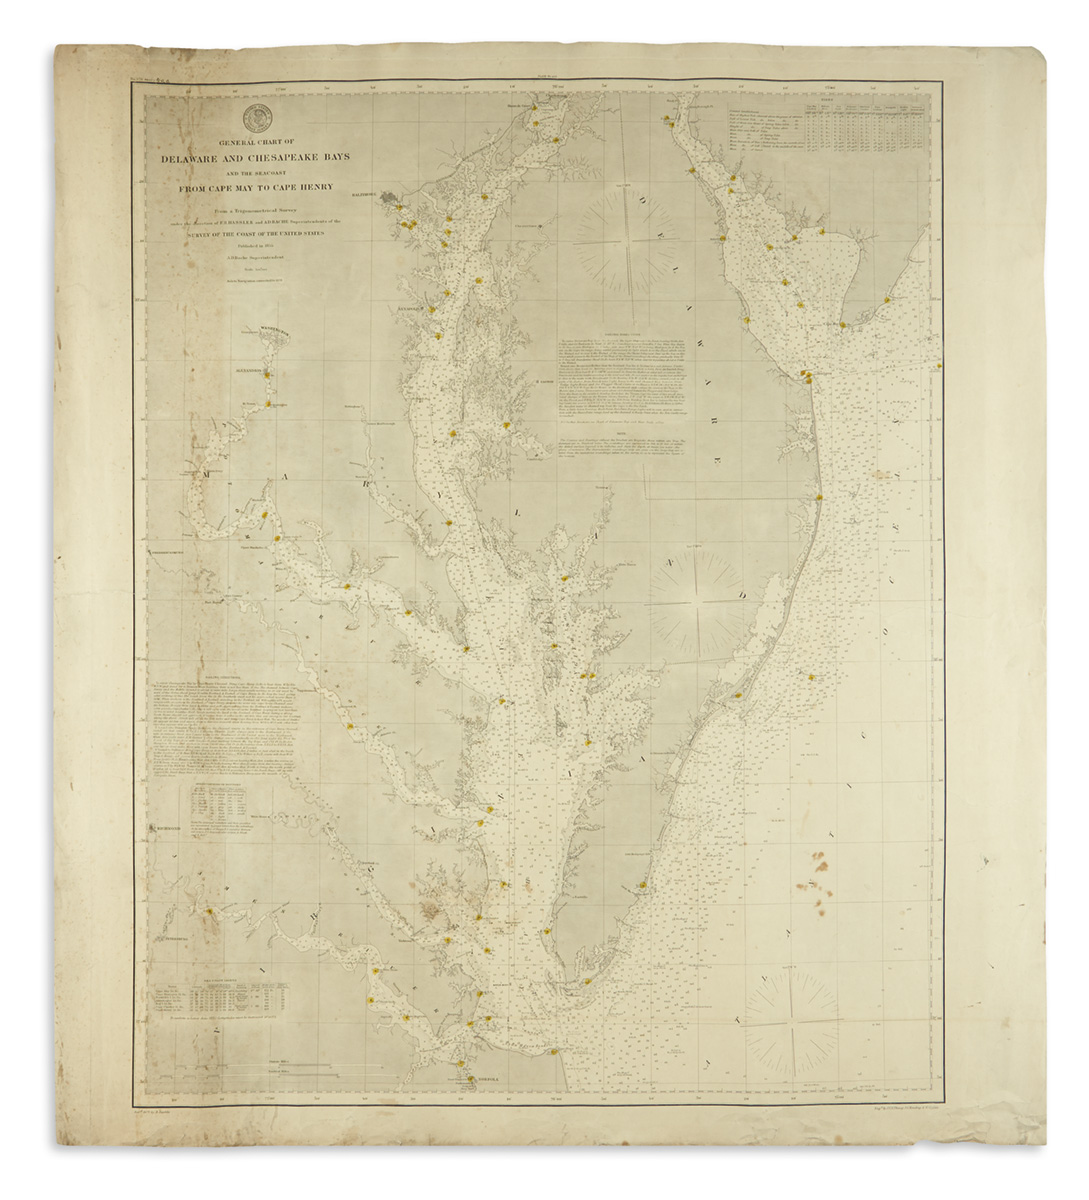 (CHARTS.) U.S. Coast Survey. General Chart of Delaware and Chesapeake Bays and the Seacoast from Cape May to Cape Henry.